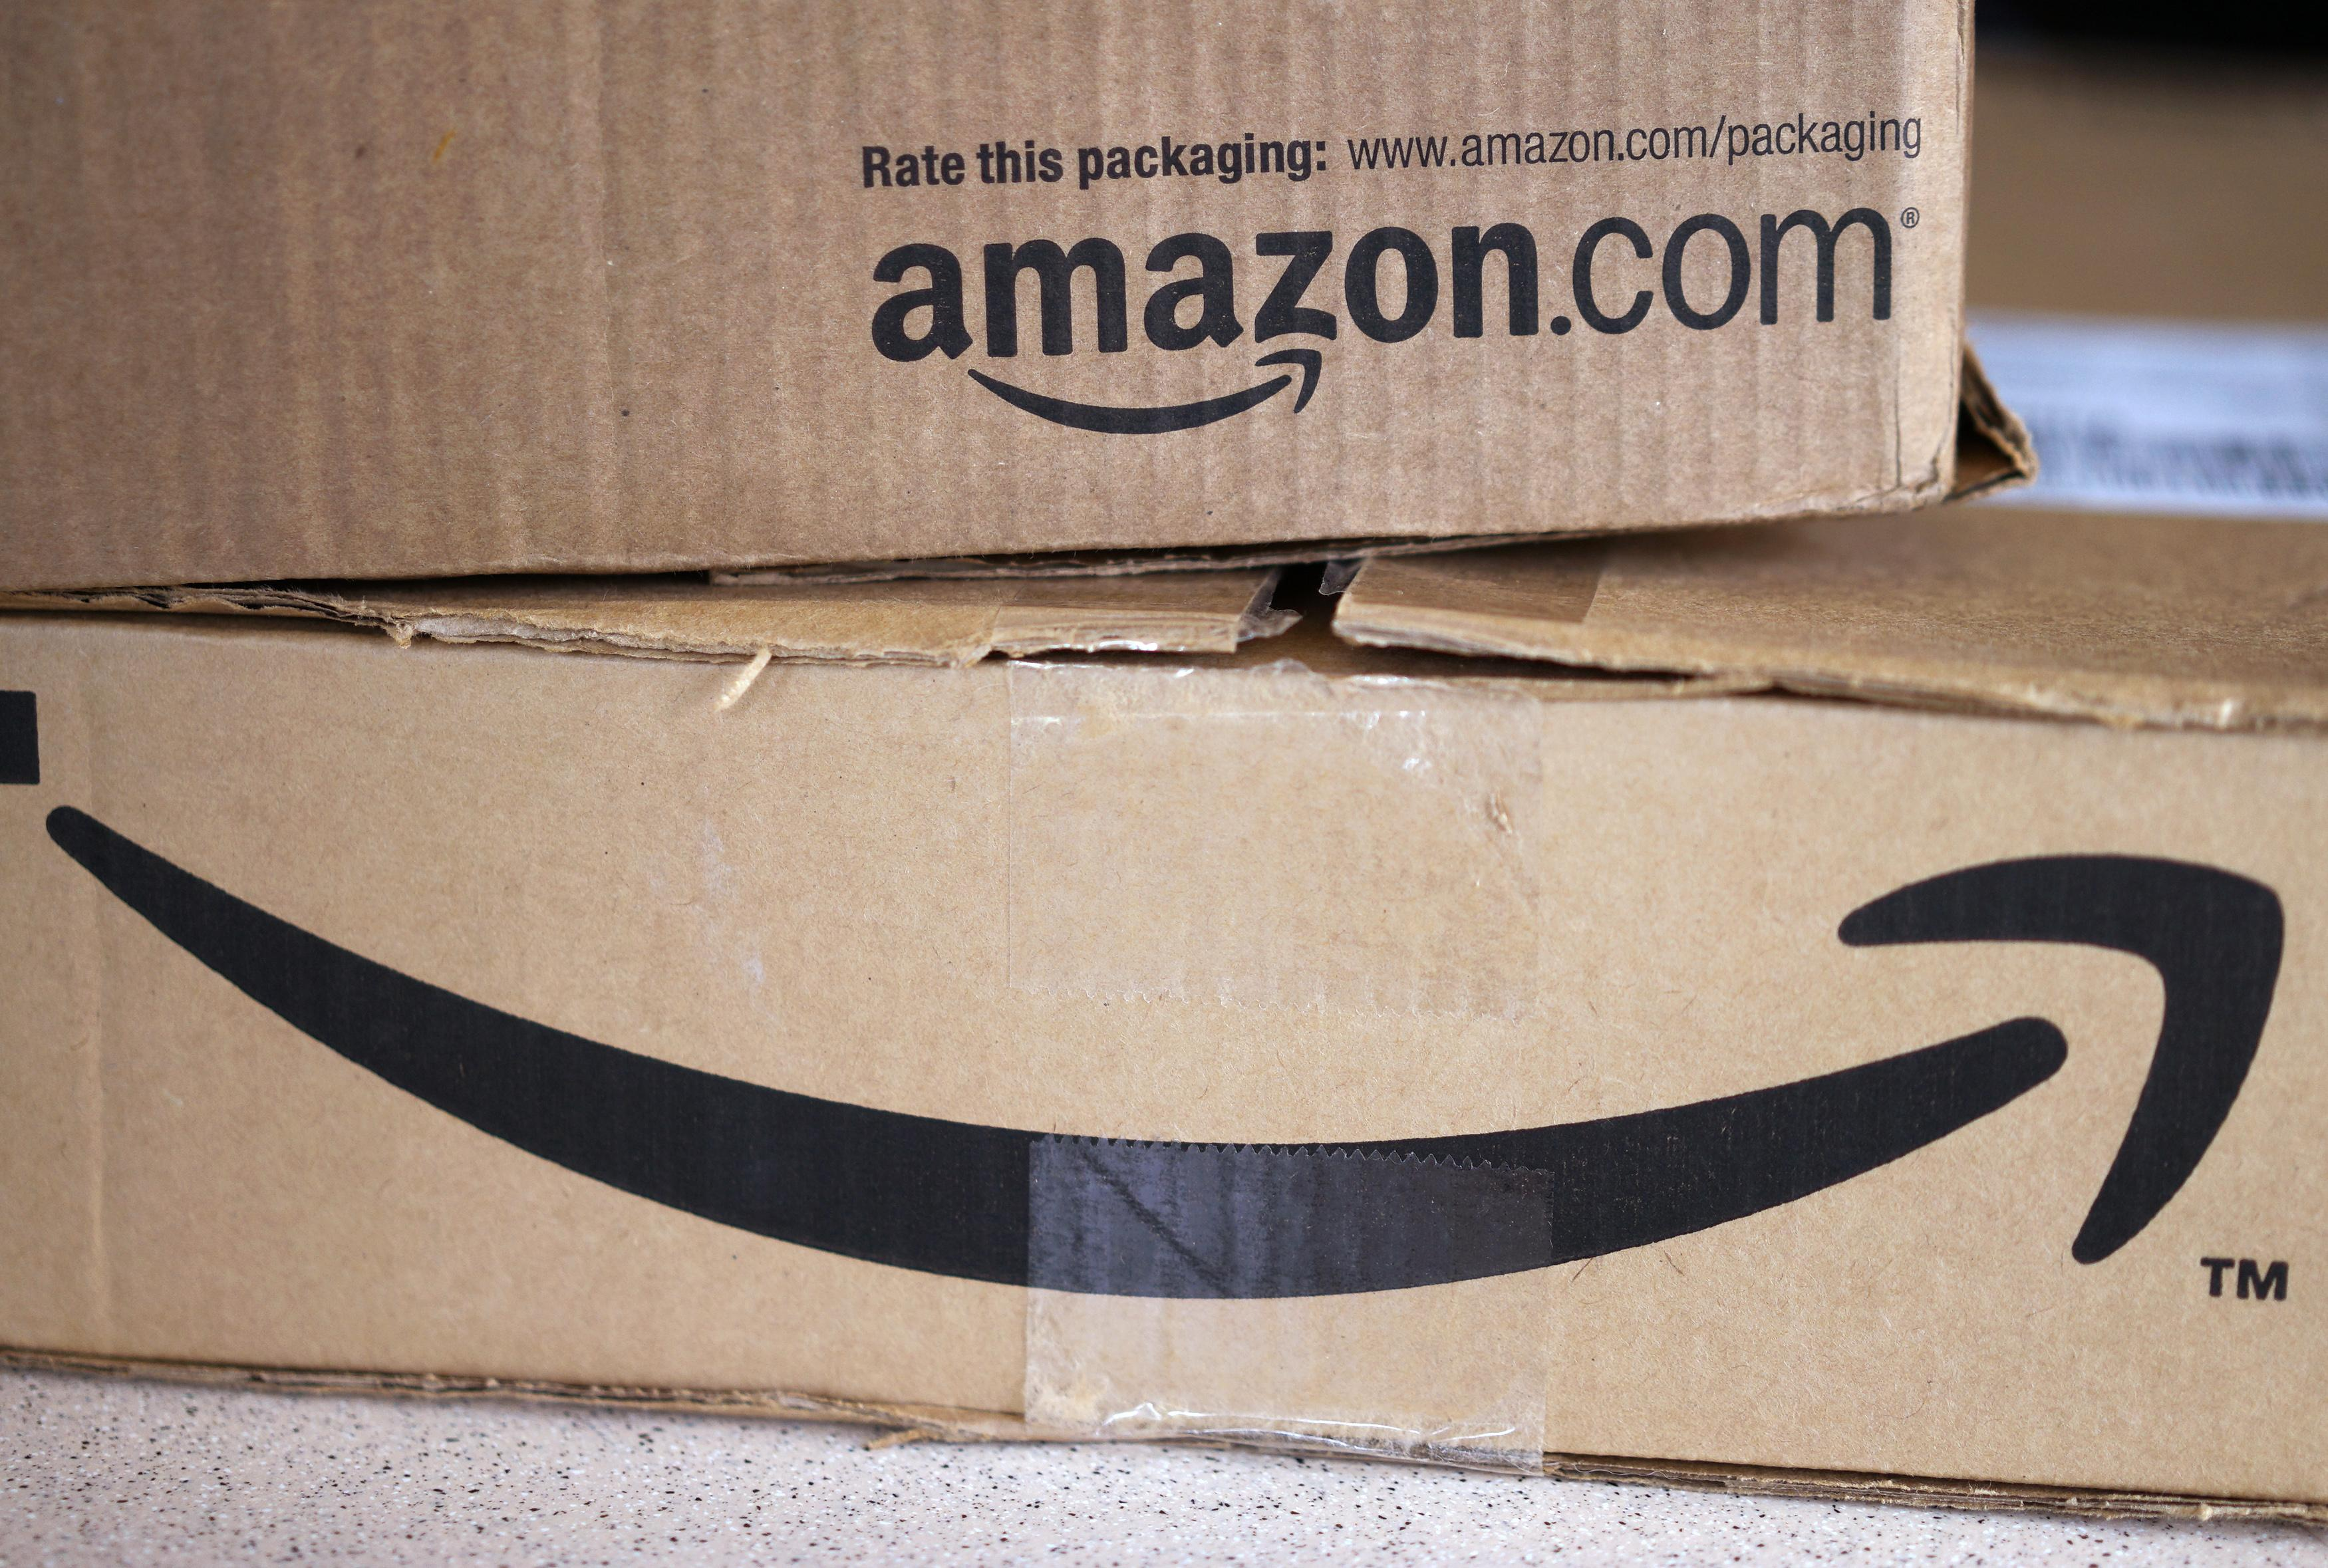 Amazon suspends 3,900 accounts over coronavirus price gouging